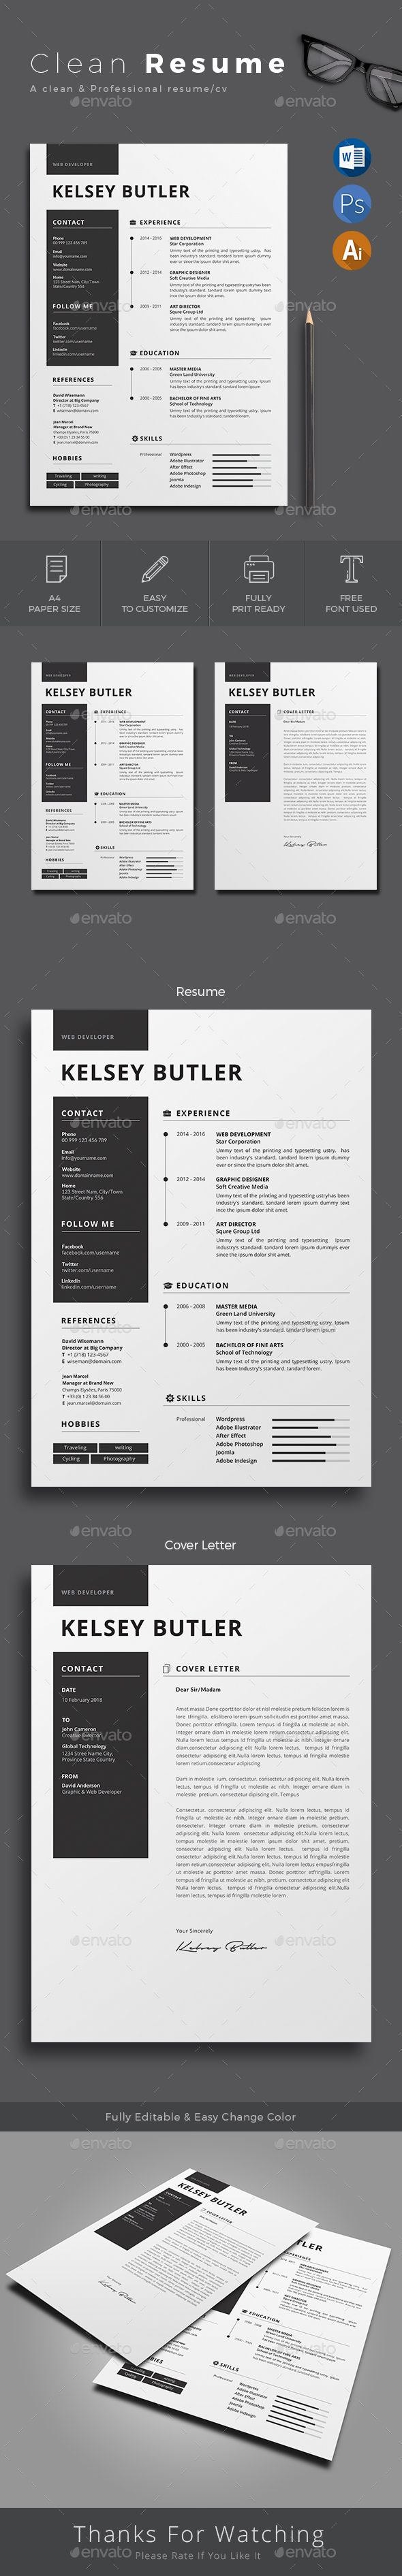 Resume 1087 best Design